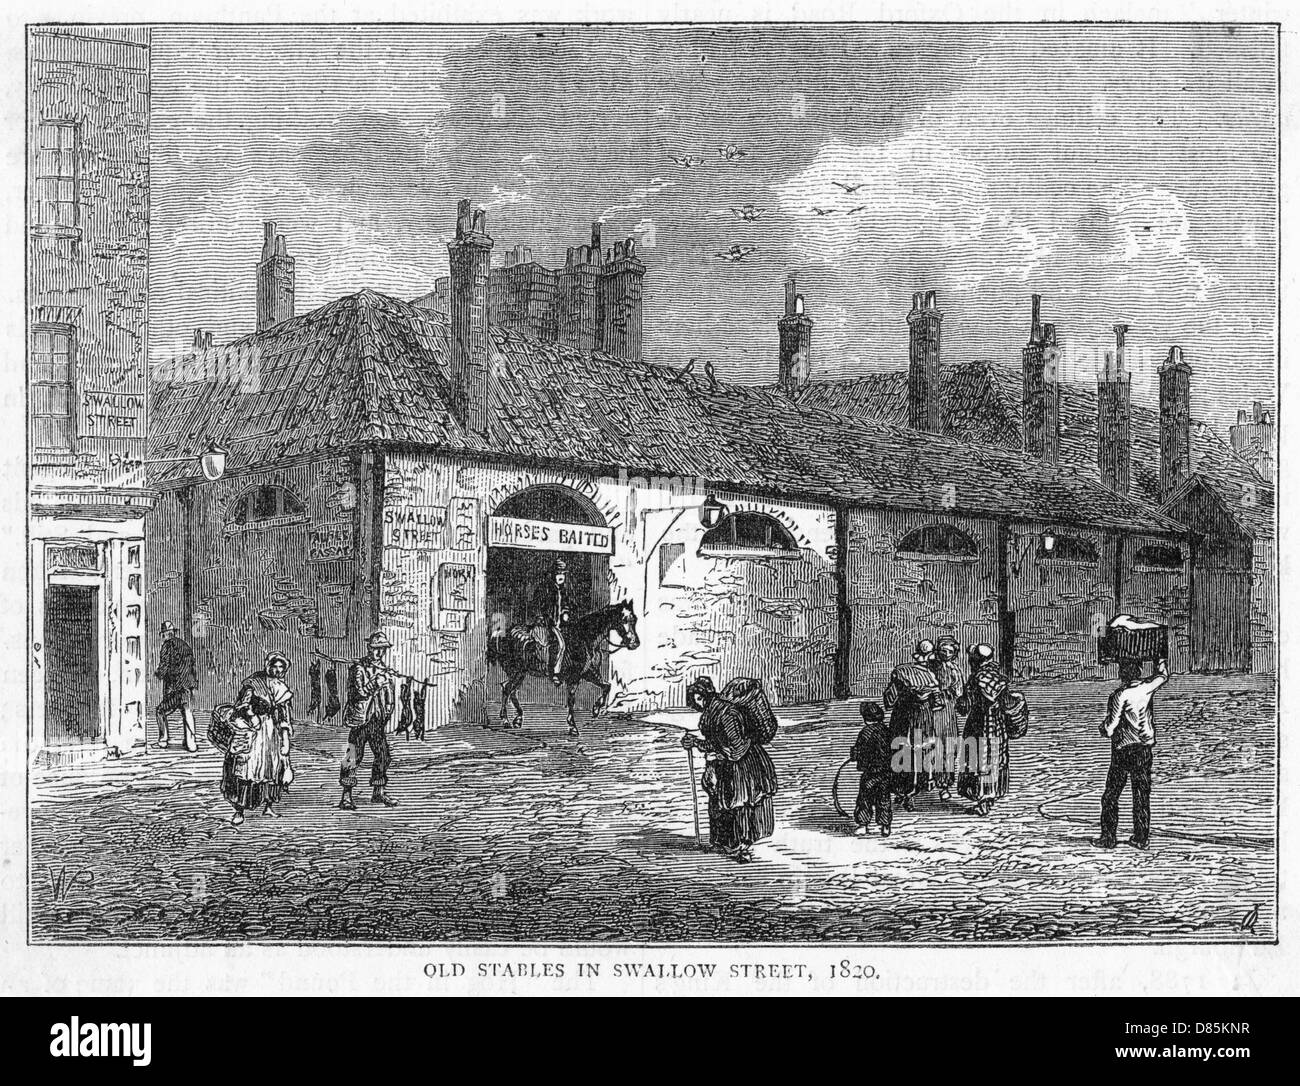 Swallow Street Stables - Stock Image